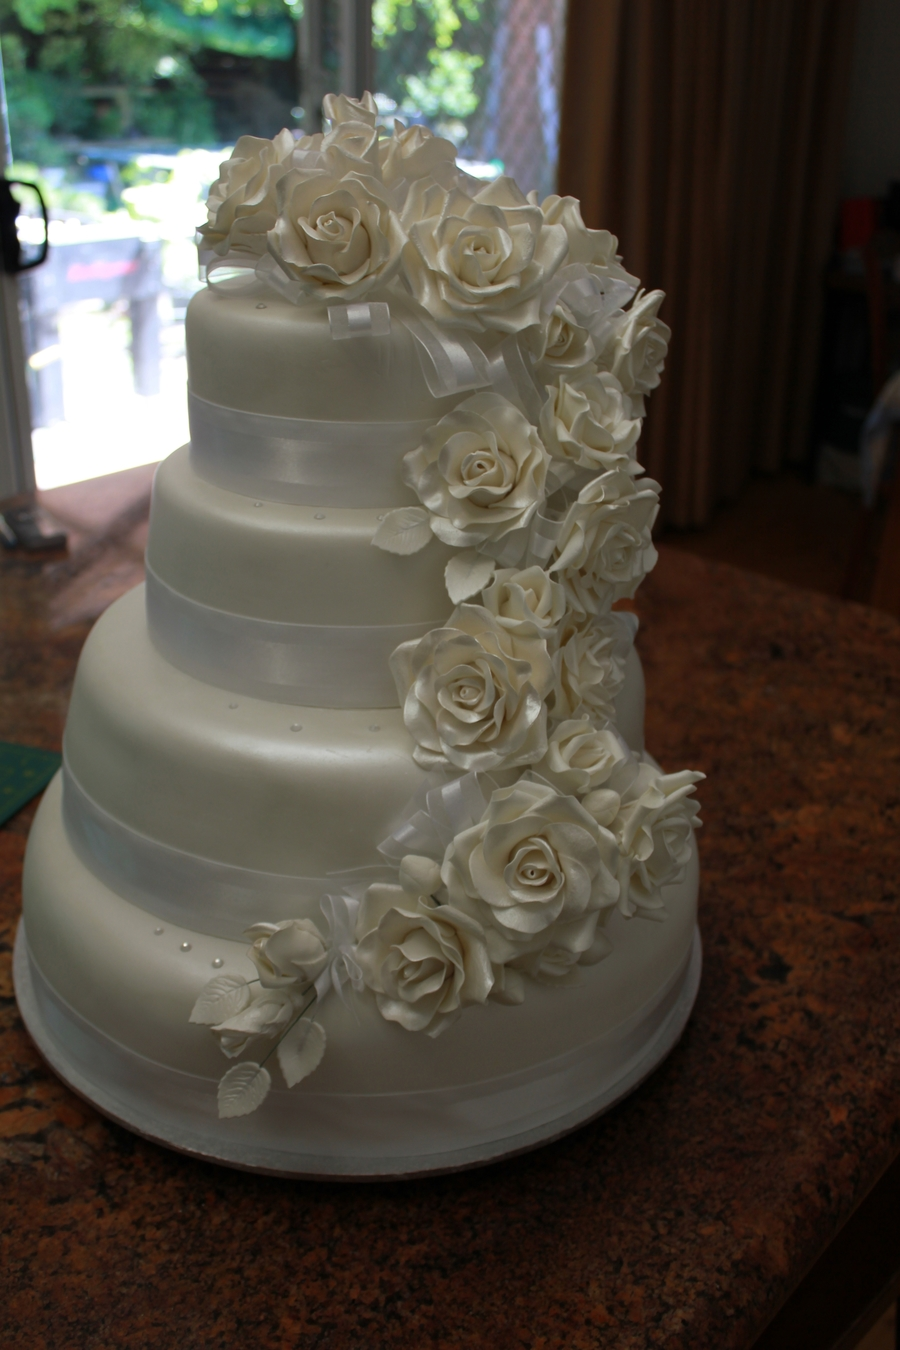 Rose Wedding Cake on Cake Central